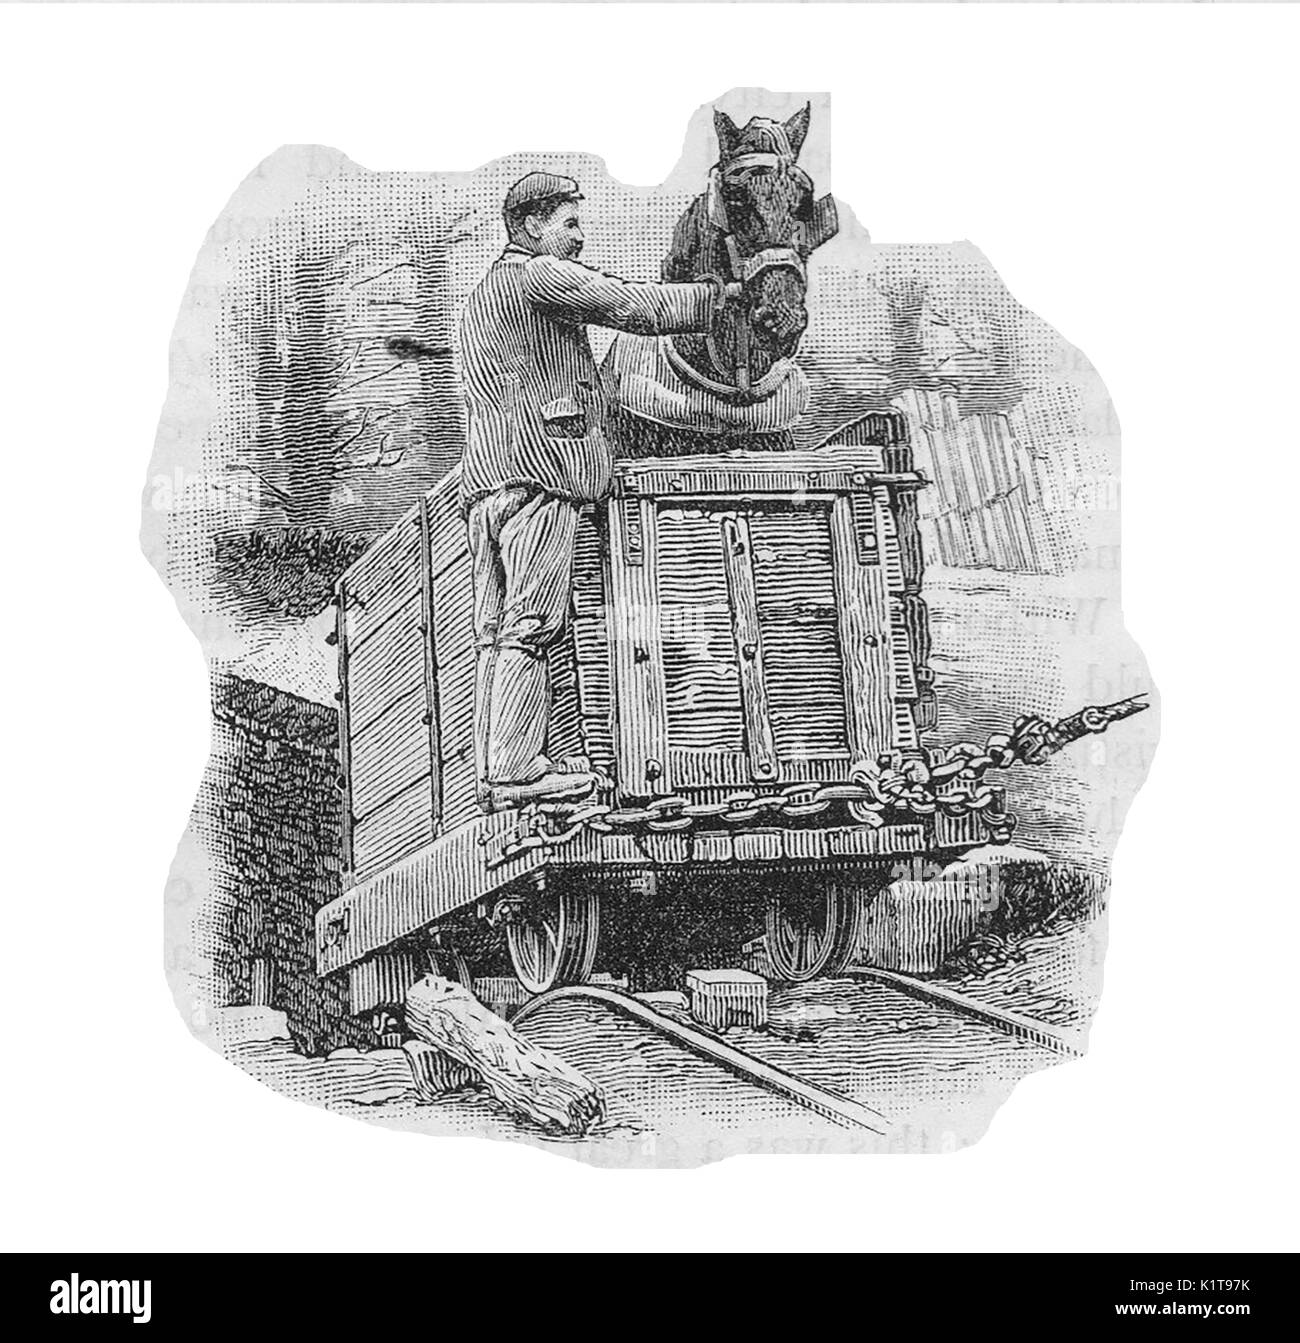 1900 - A British coal miner and his pit pony ascending from a mine in a coal truck - Stock Image